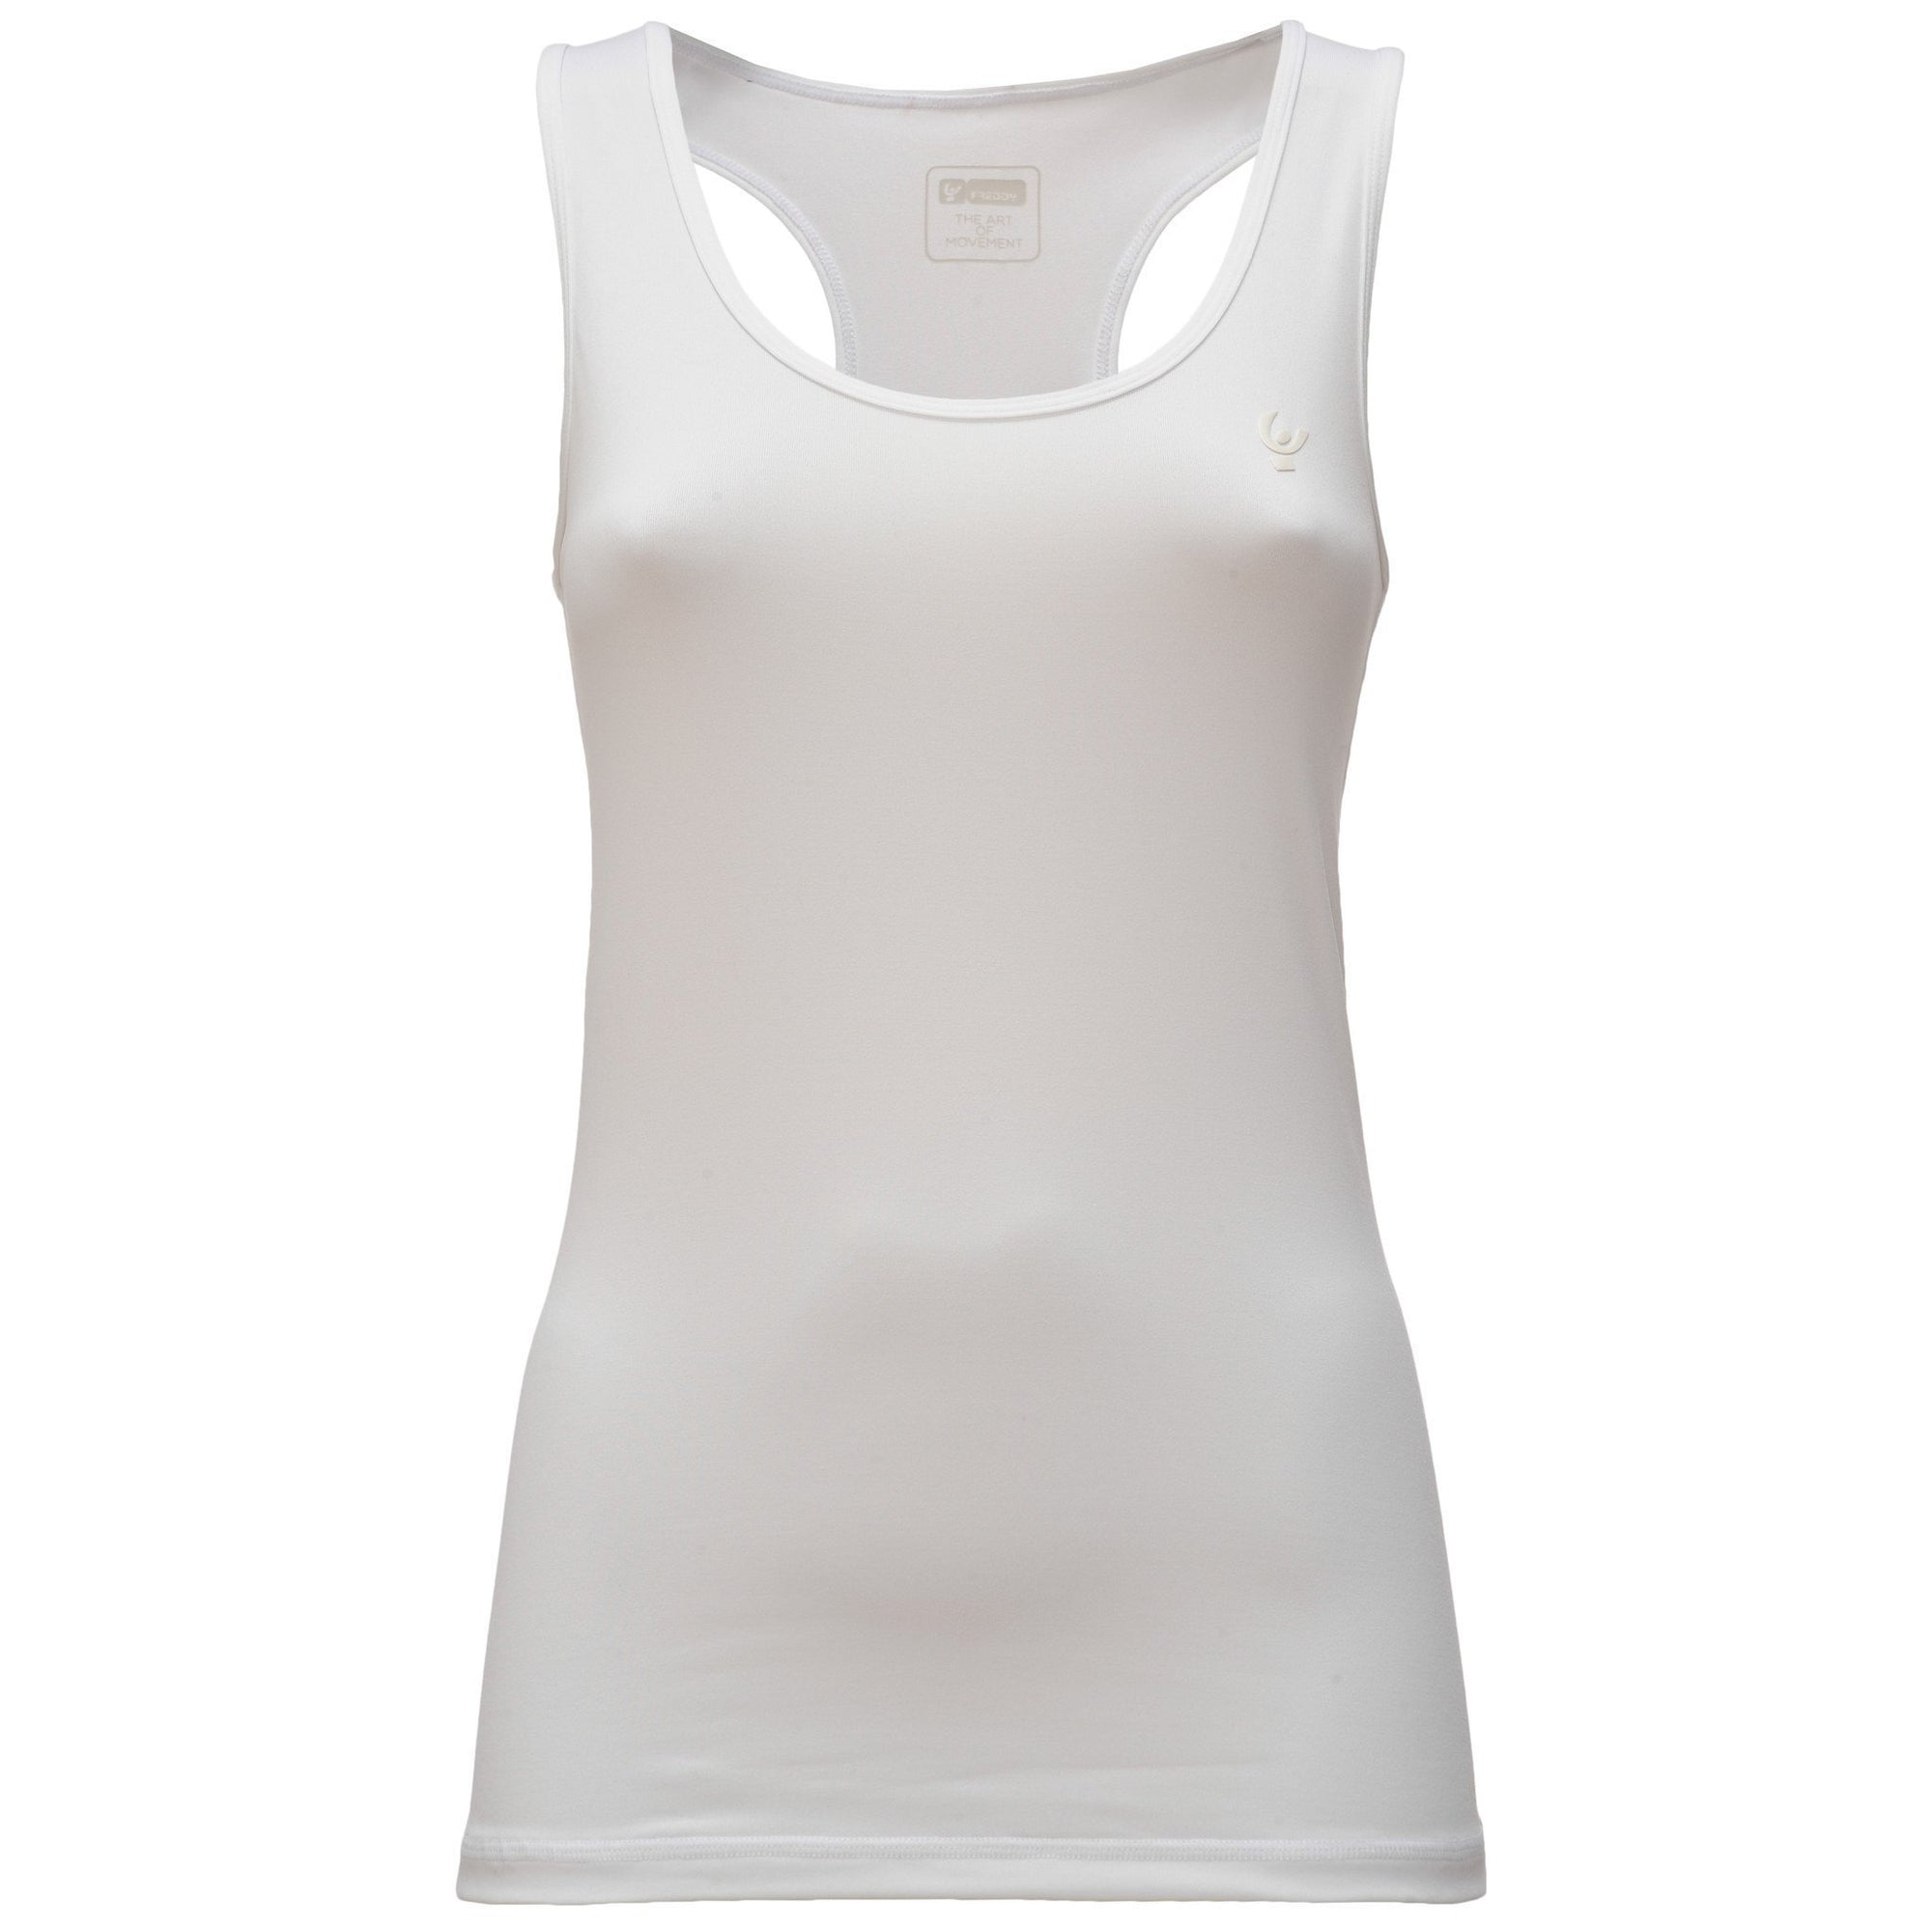 WHITE TANK TOP IN LIGHT D.I.W.O.® WITH CROSSED STRAPS